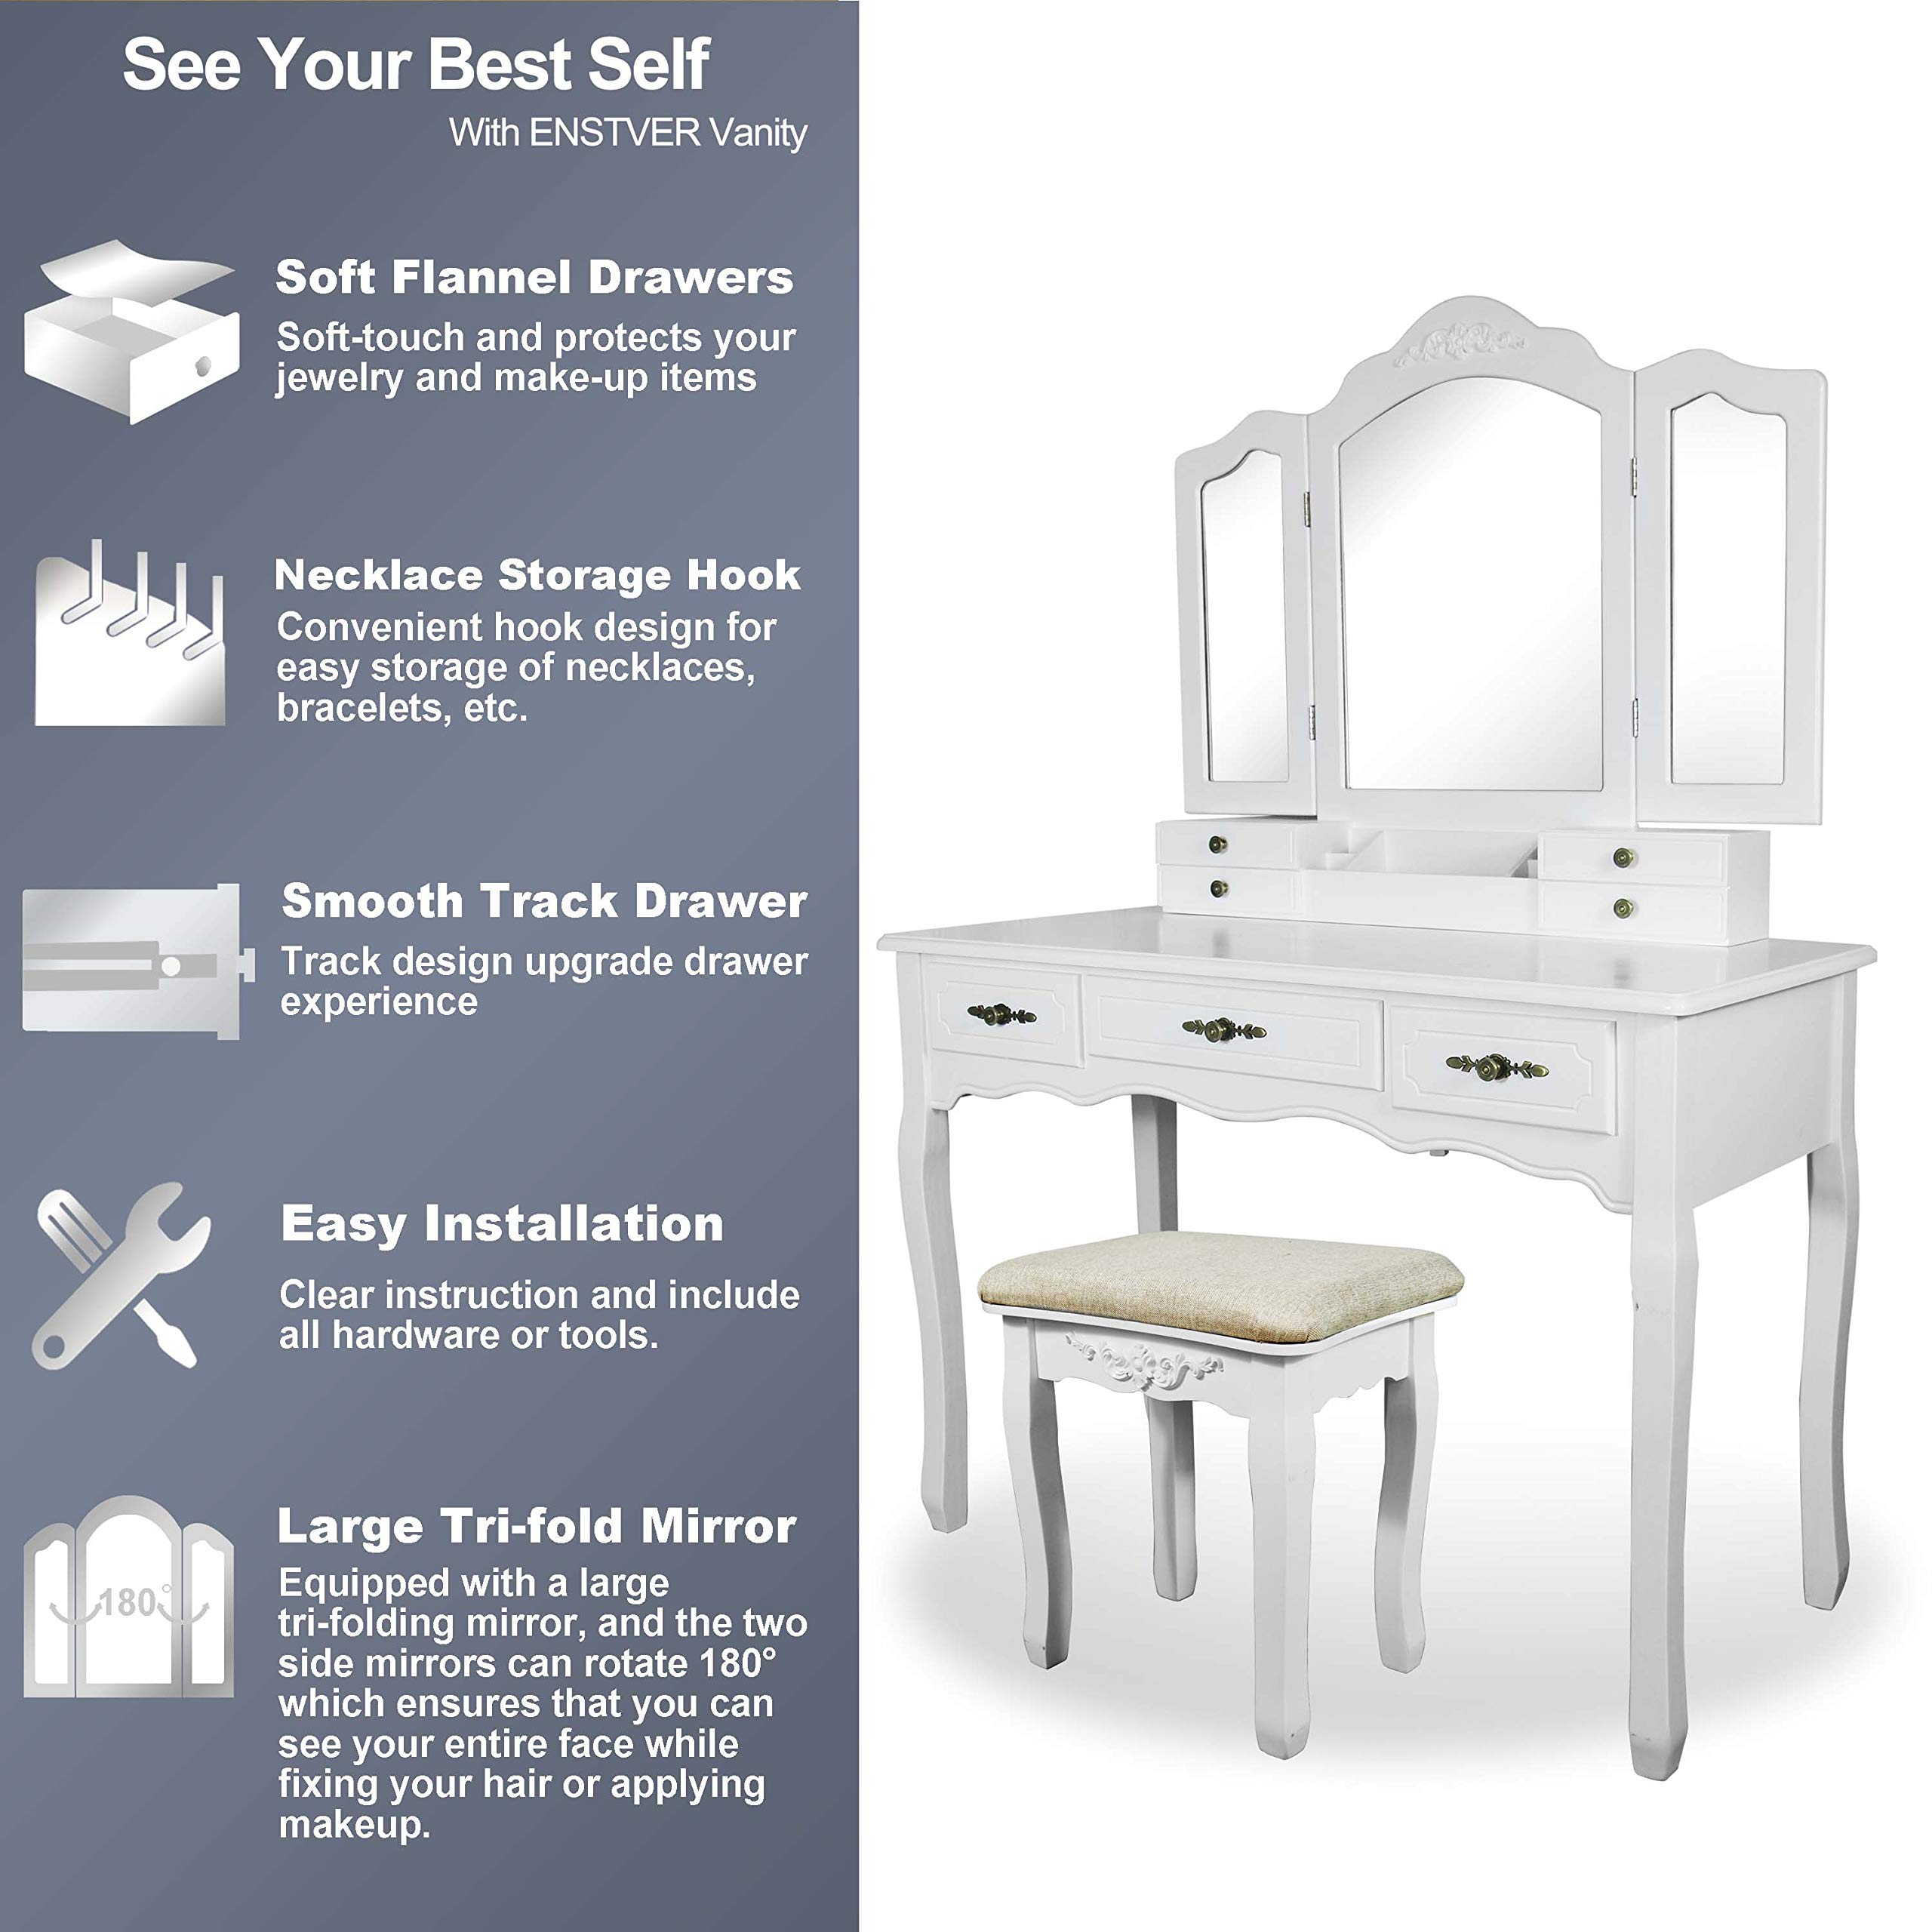 Vanity Beauty Station,Large Tri-Folding Necklace Hooked Mirrors,6 Organization 7 Drawers Makeup Dress Table with Cushioned Stool Set - White by ENSTVER (Image #3)